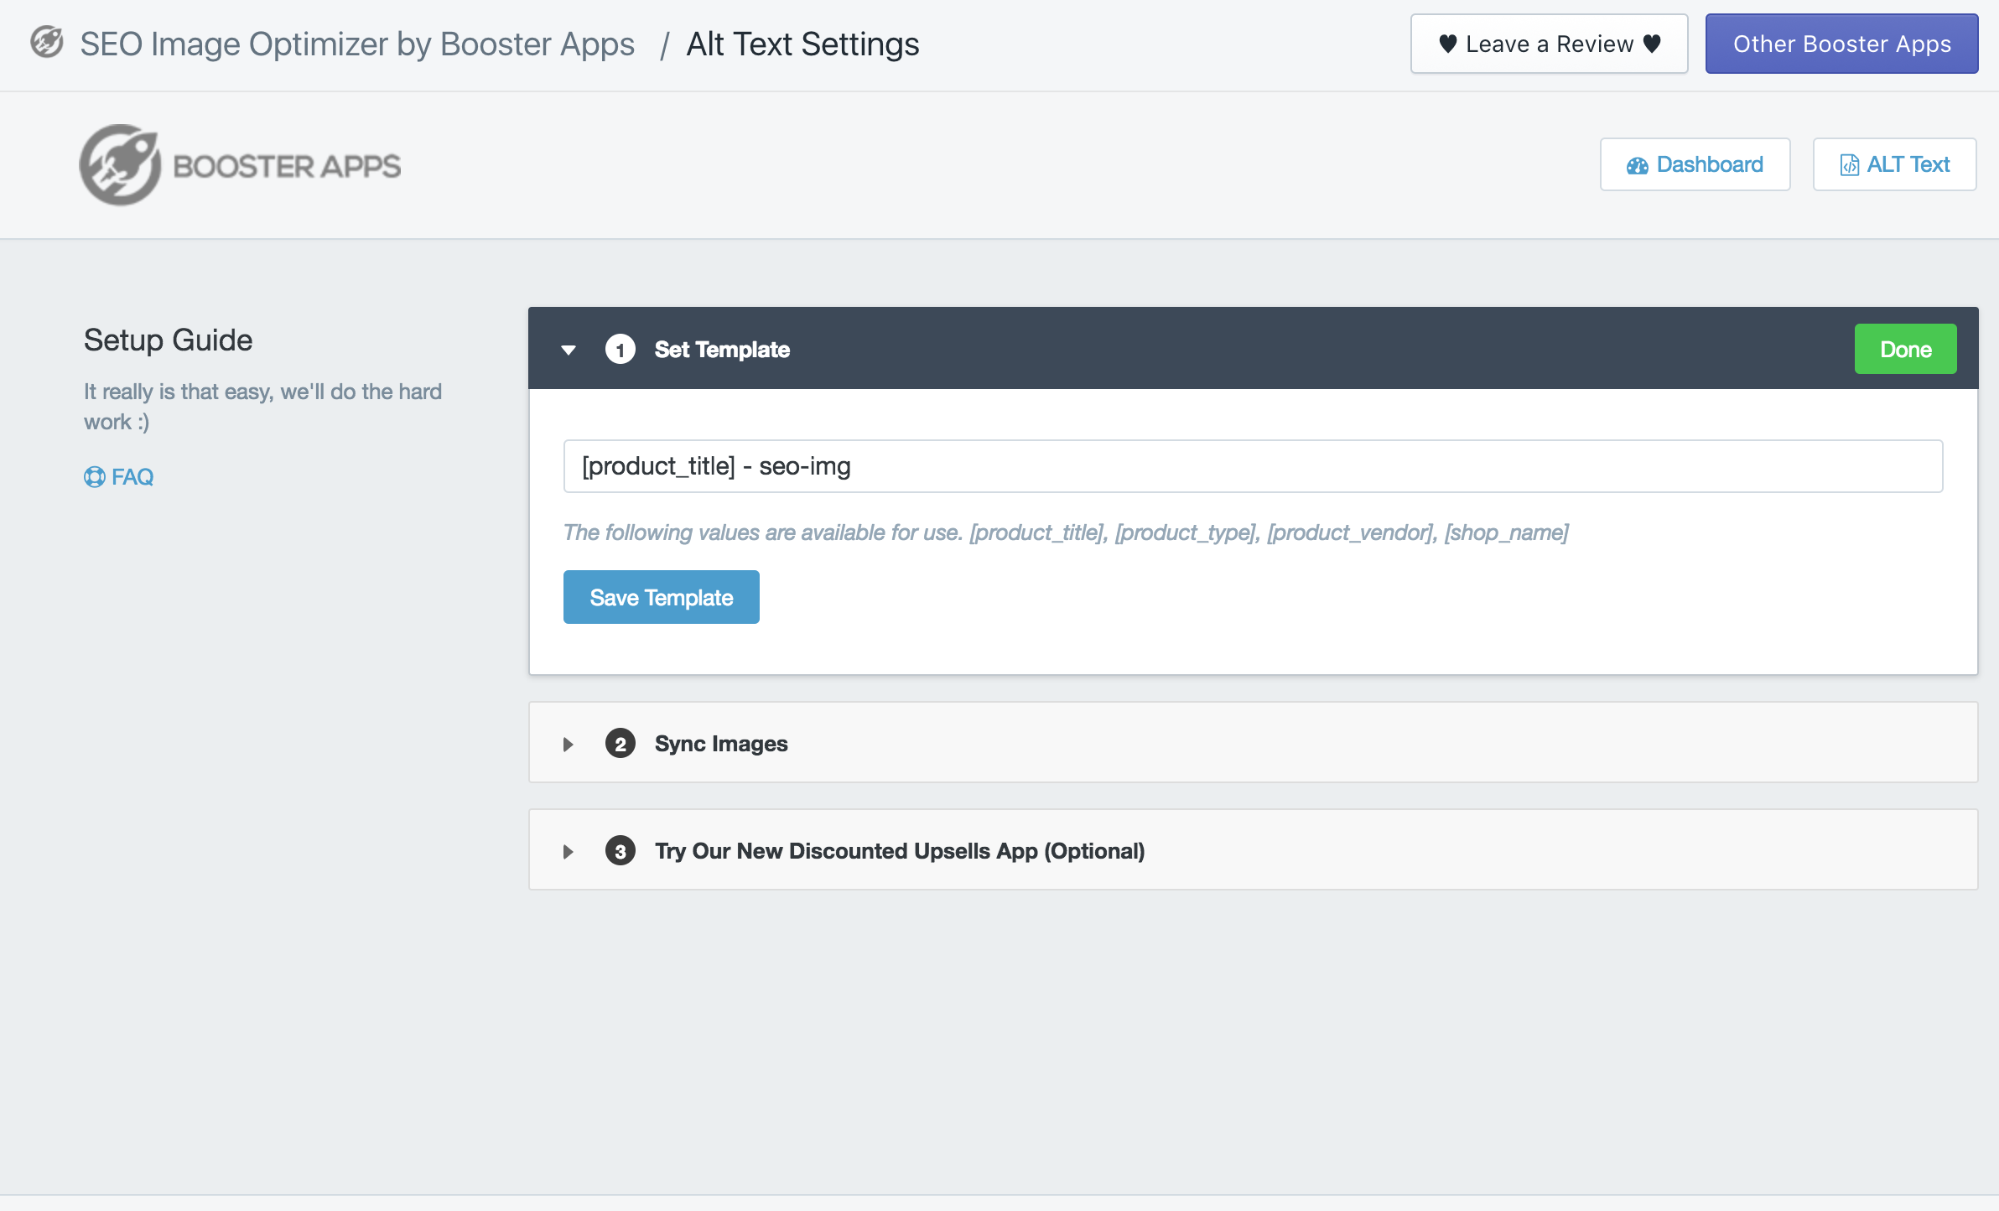 Screenshot of the settings page for SEO image optimizer